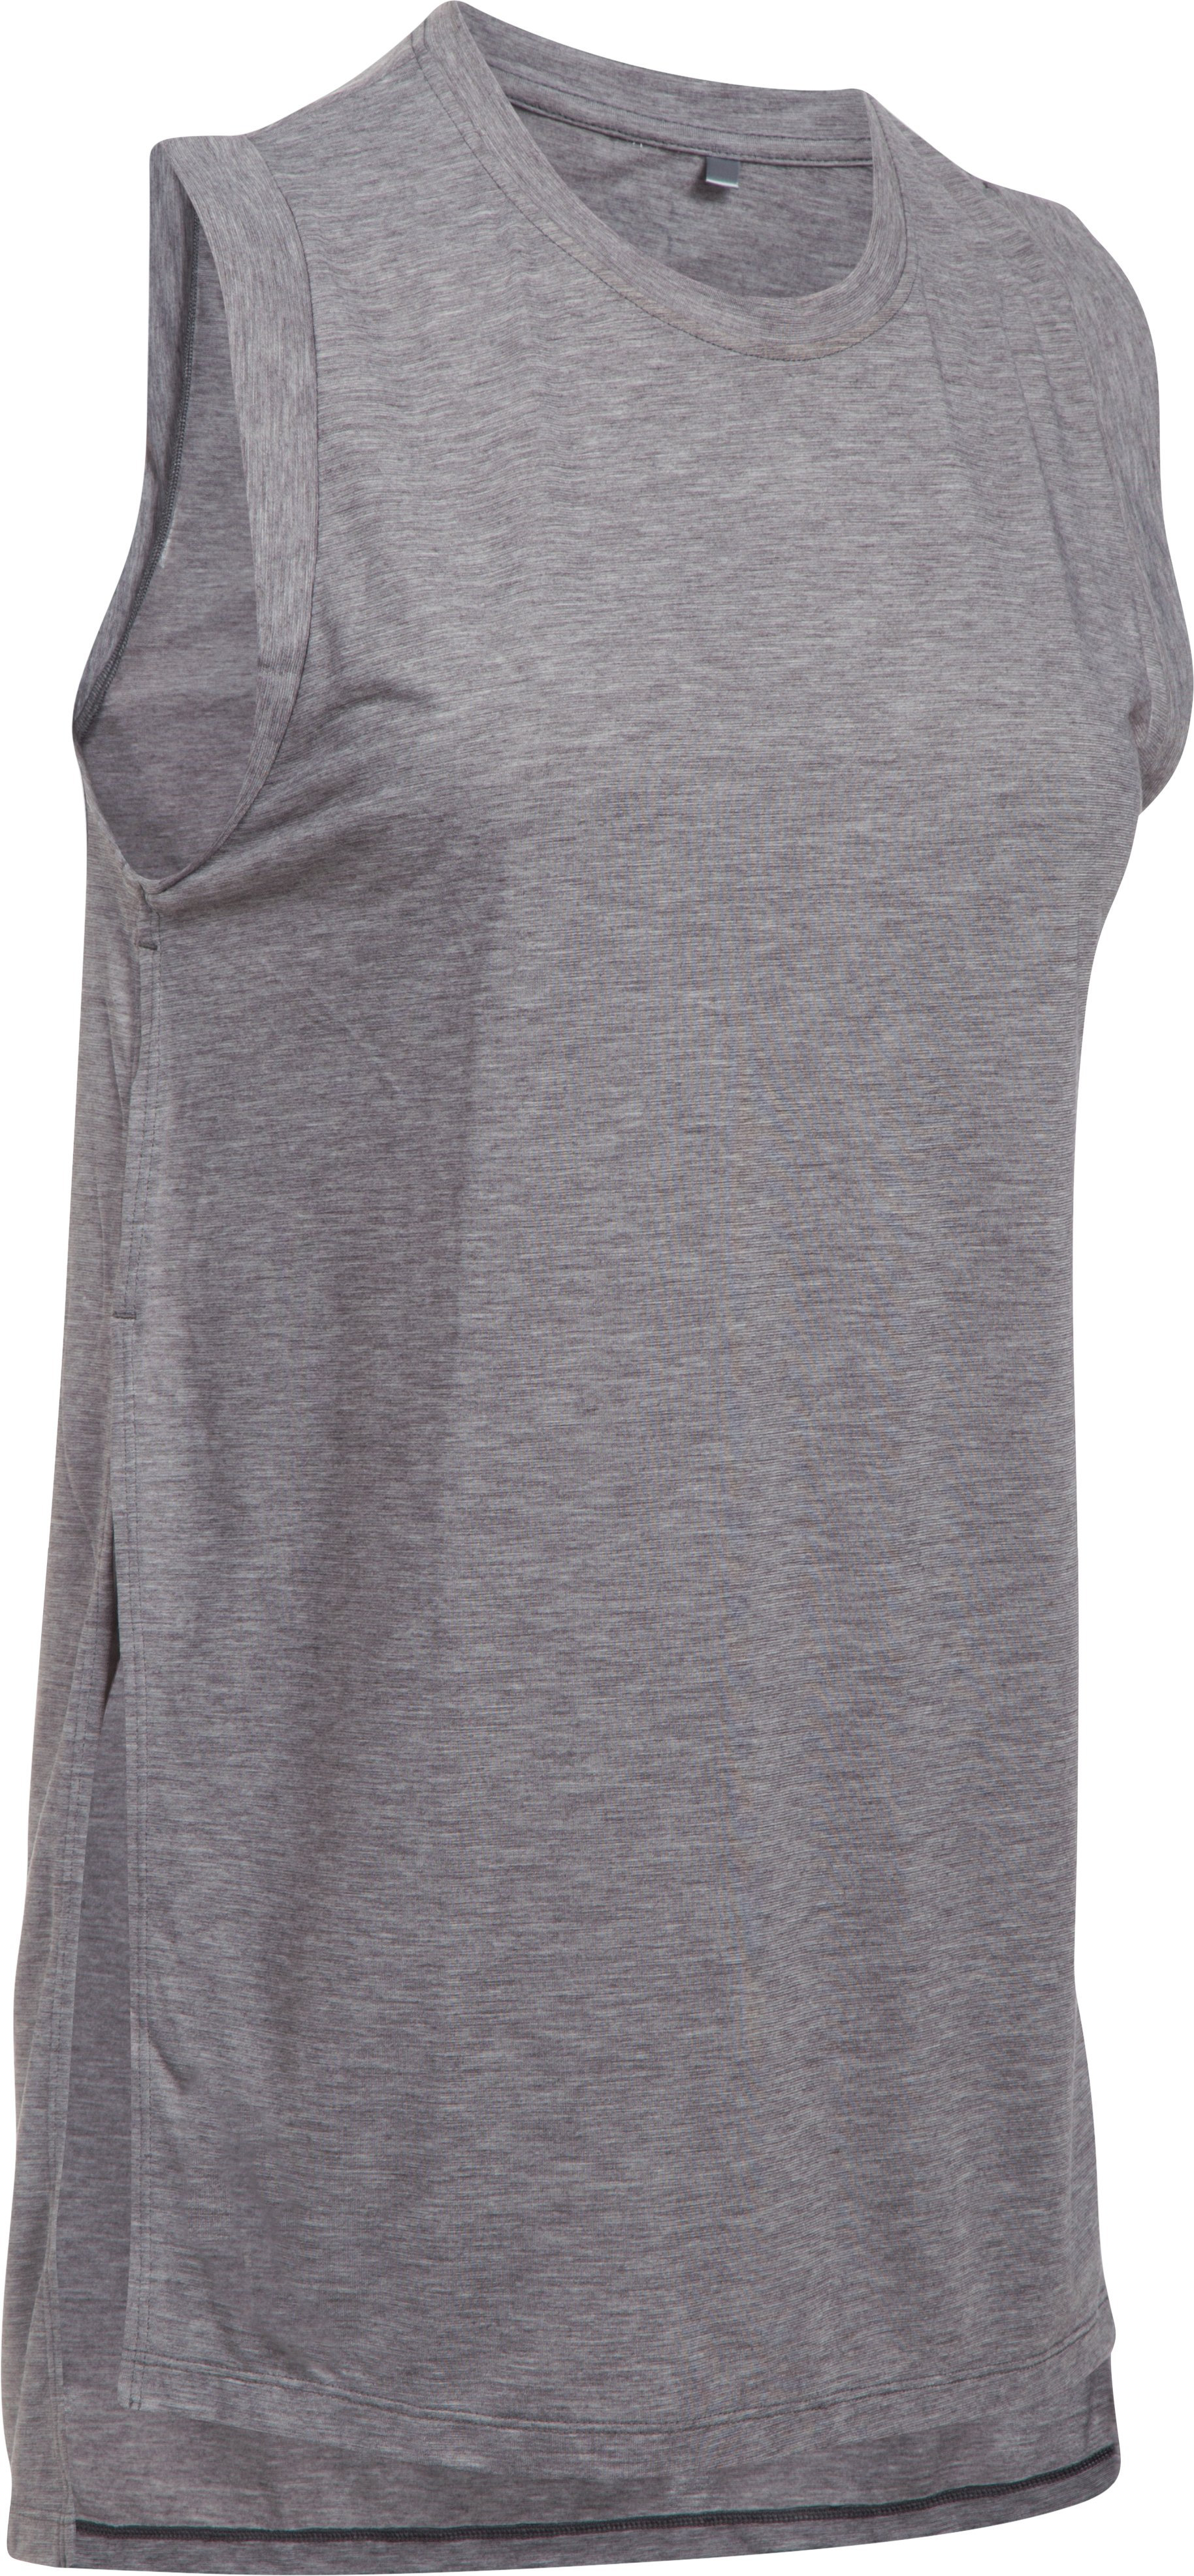 Women's UA Breathe Tunic Tank, Carbon Heather, undefined